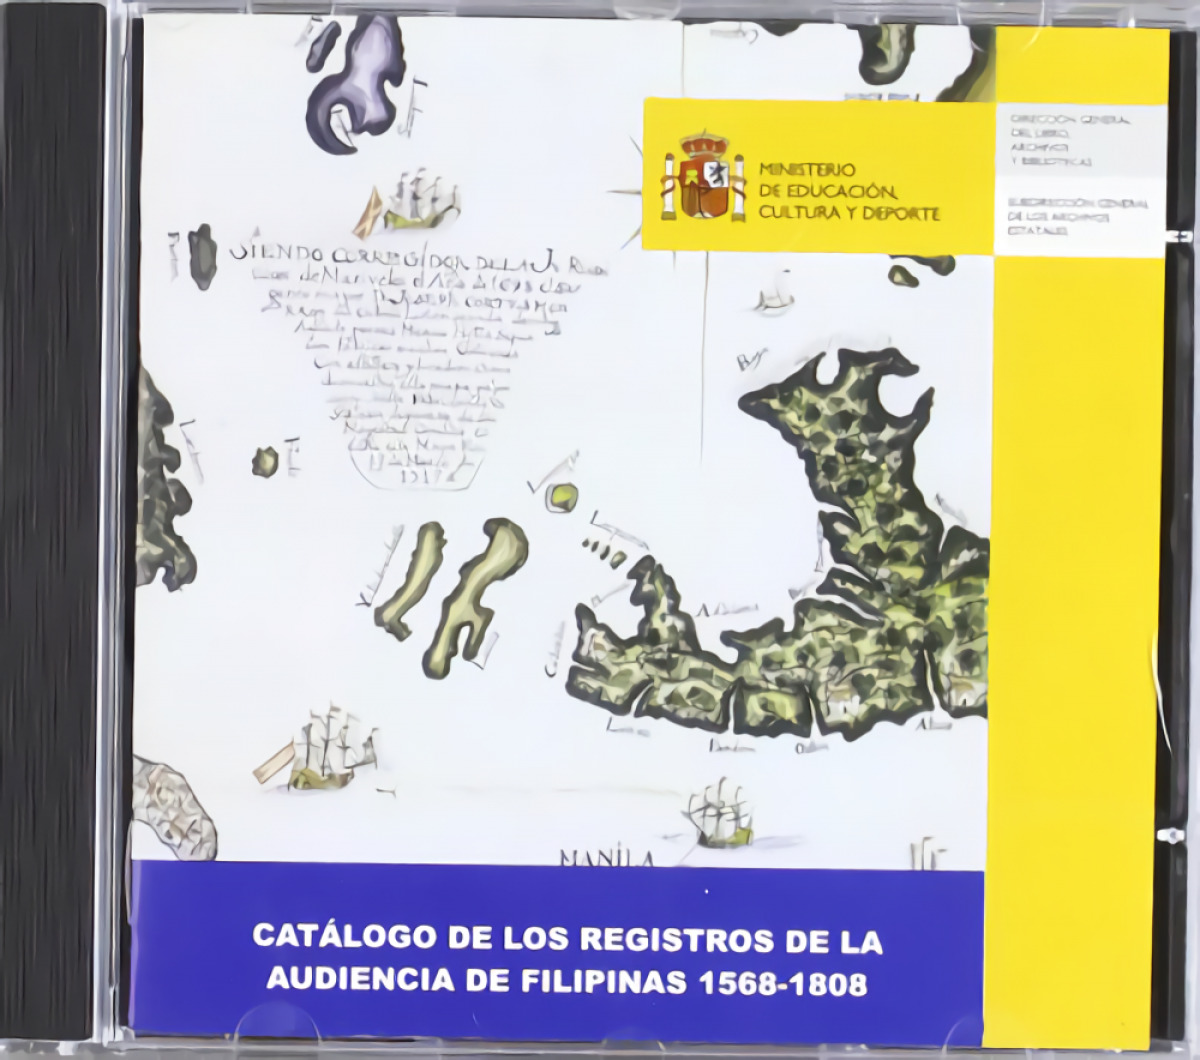 Catalogo reg.audiencia filipinas (cd-rom) - Ministerio De Cultura